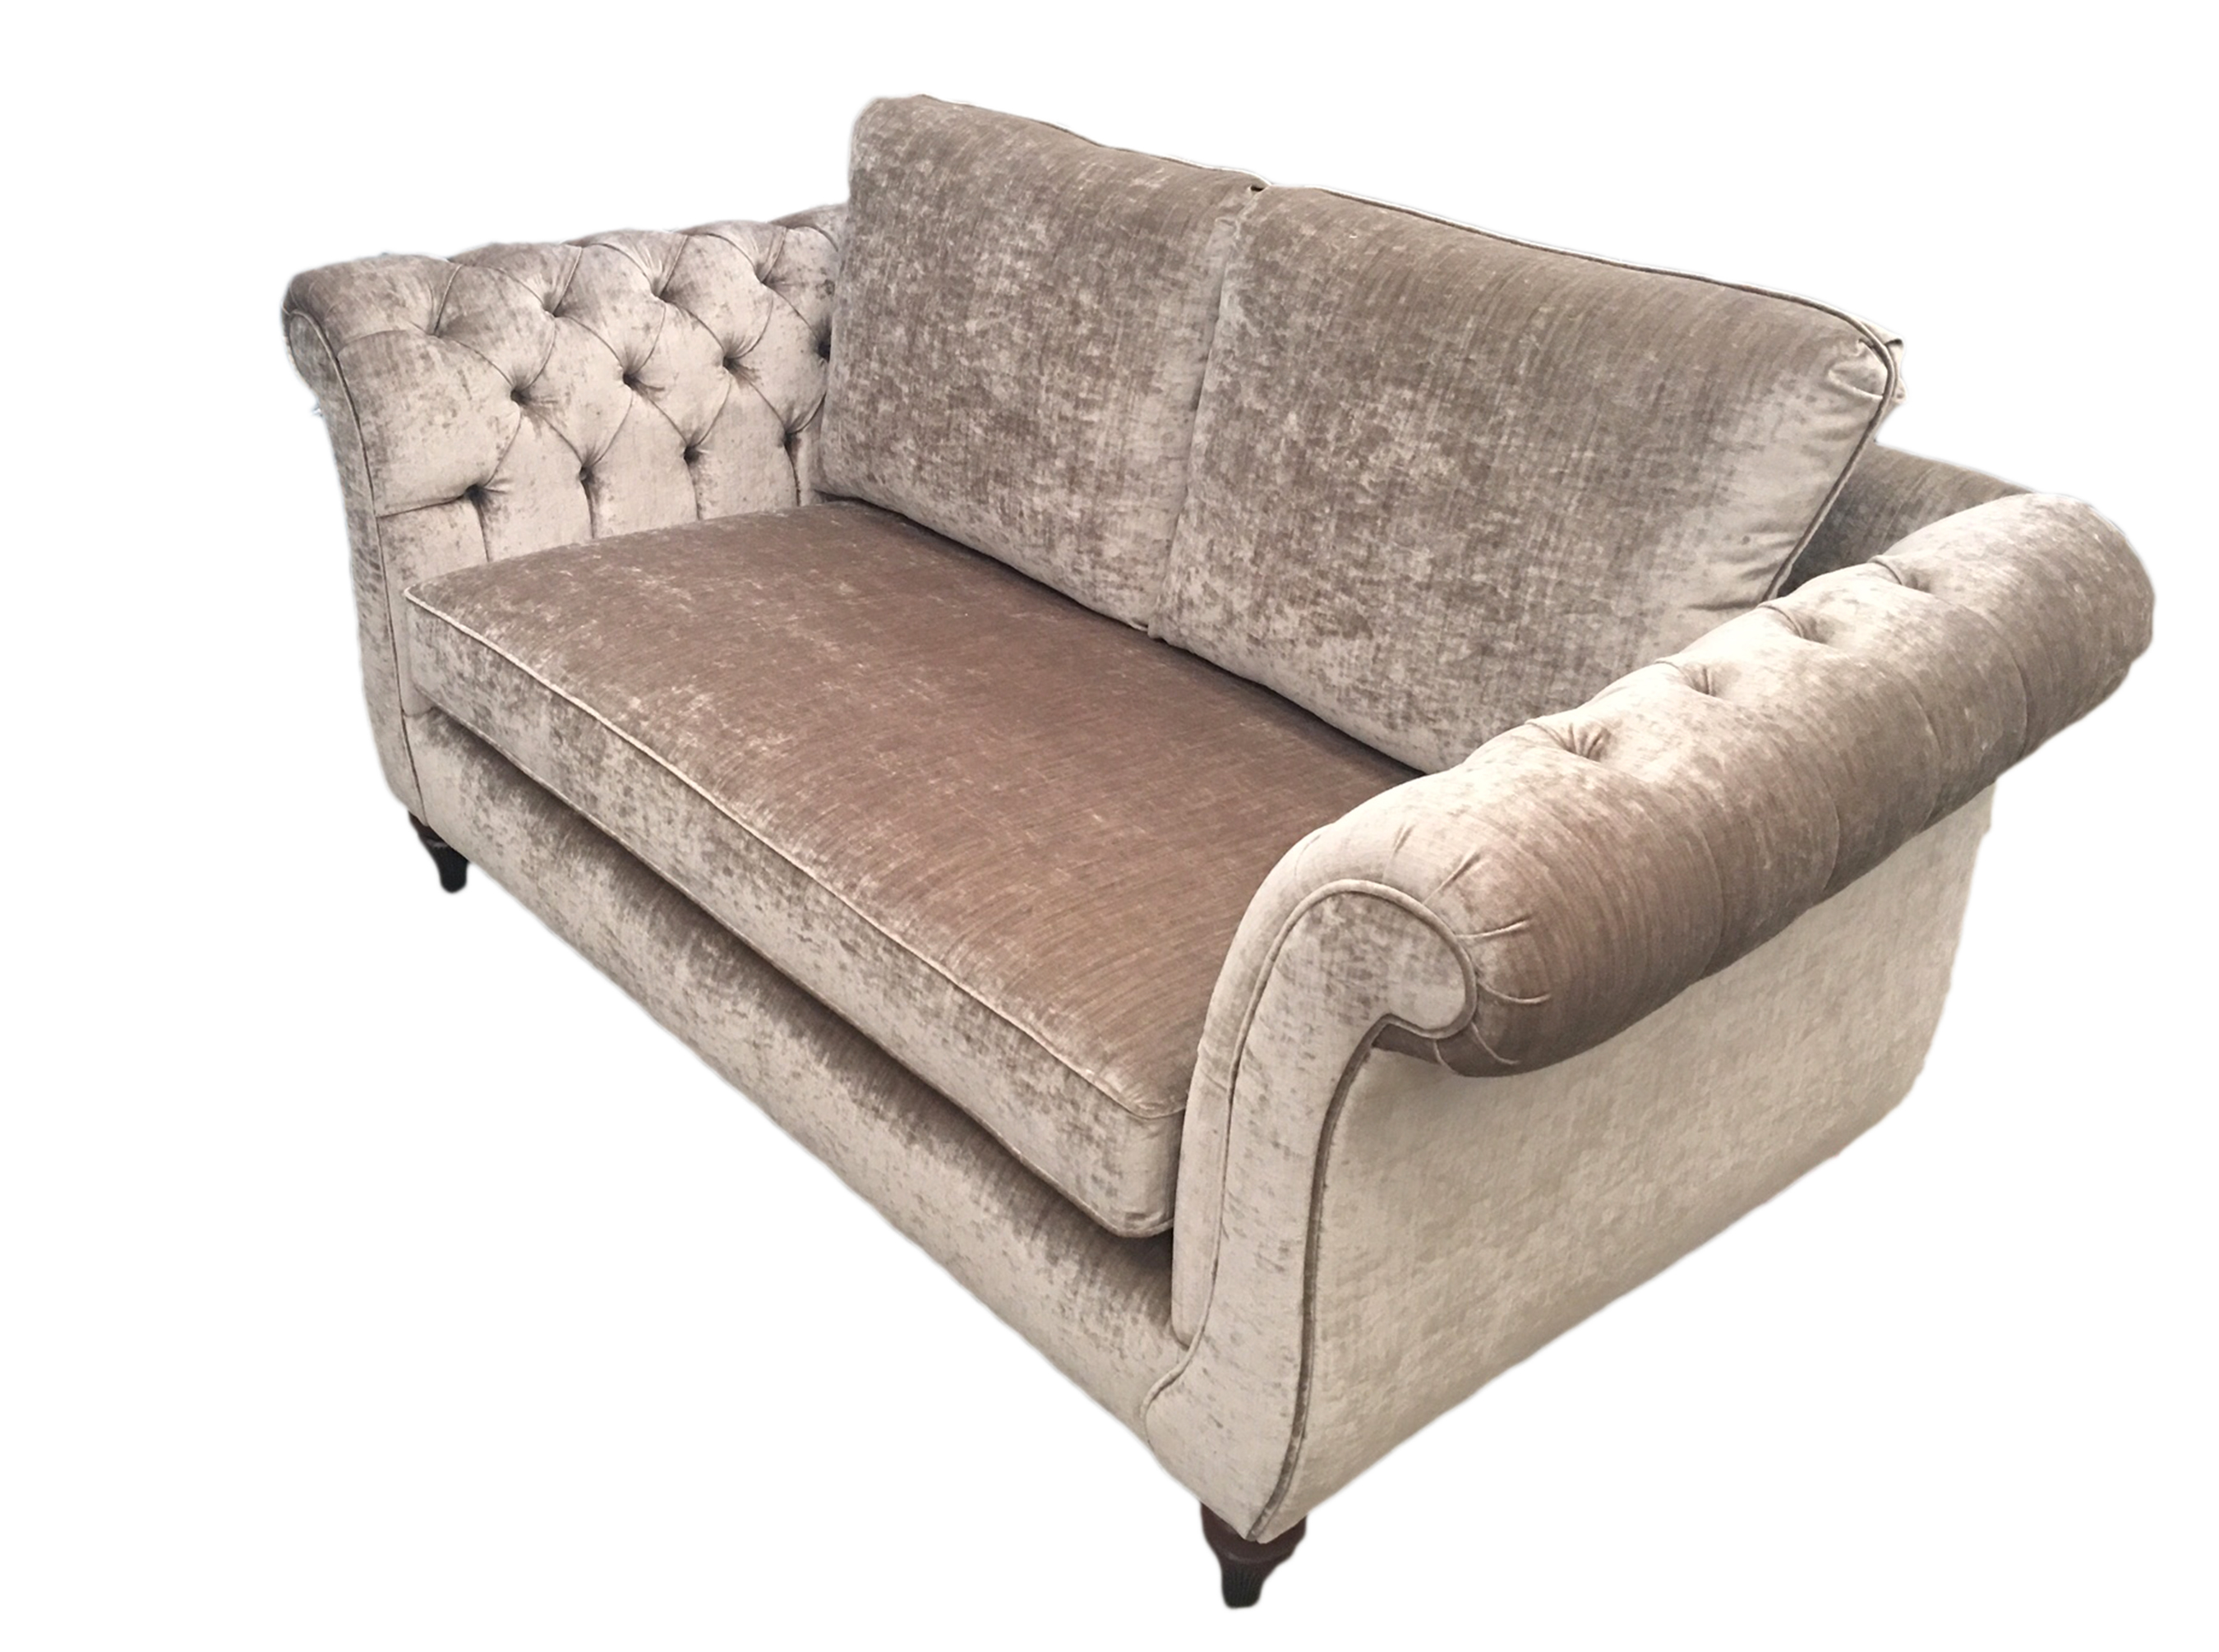 La Scala Lafayette Sofas Chairs Range Finline Furniture